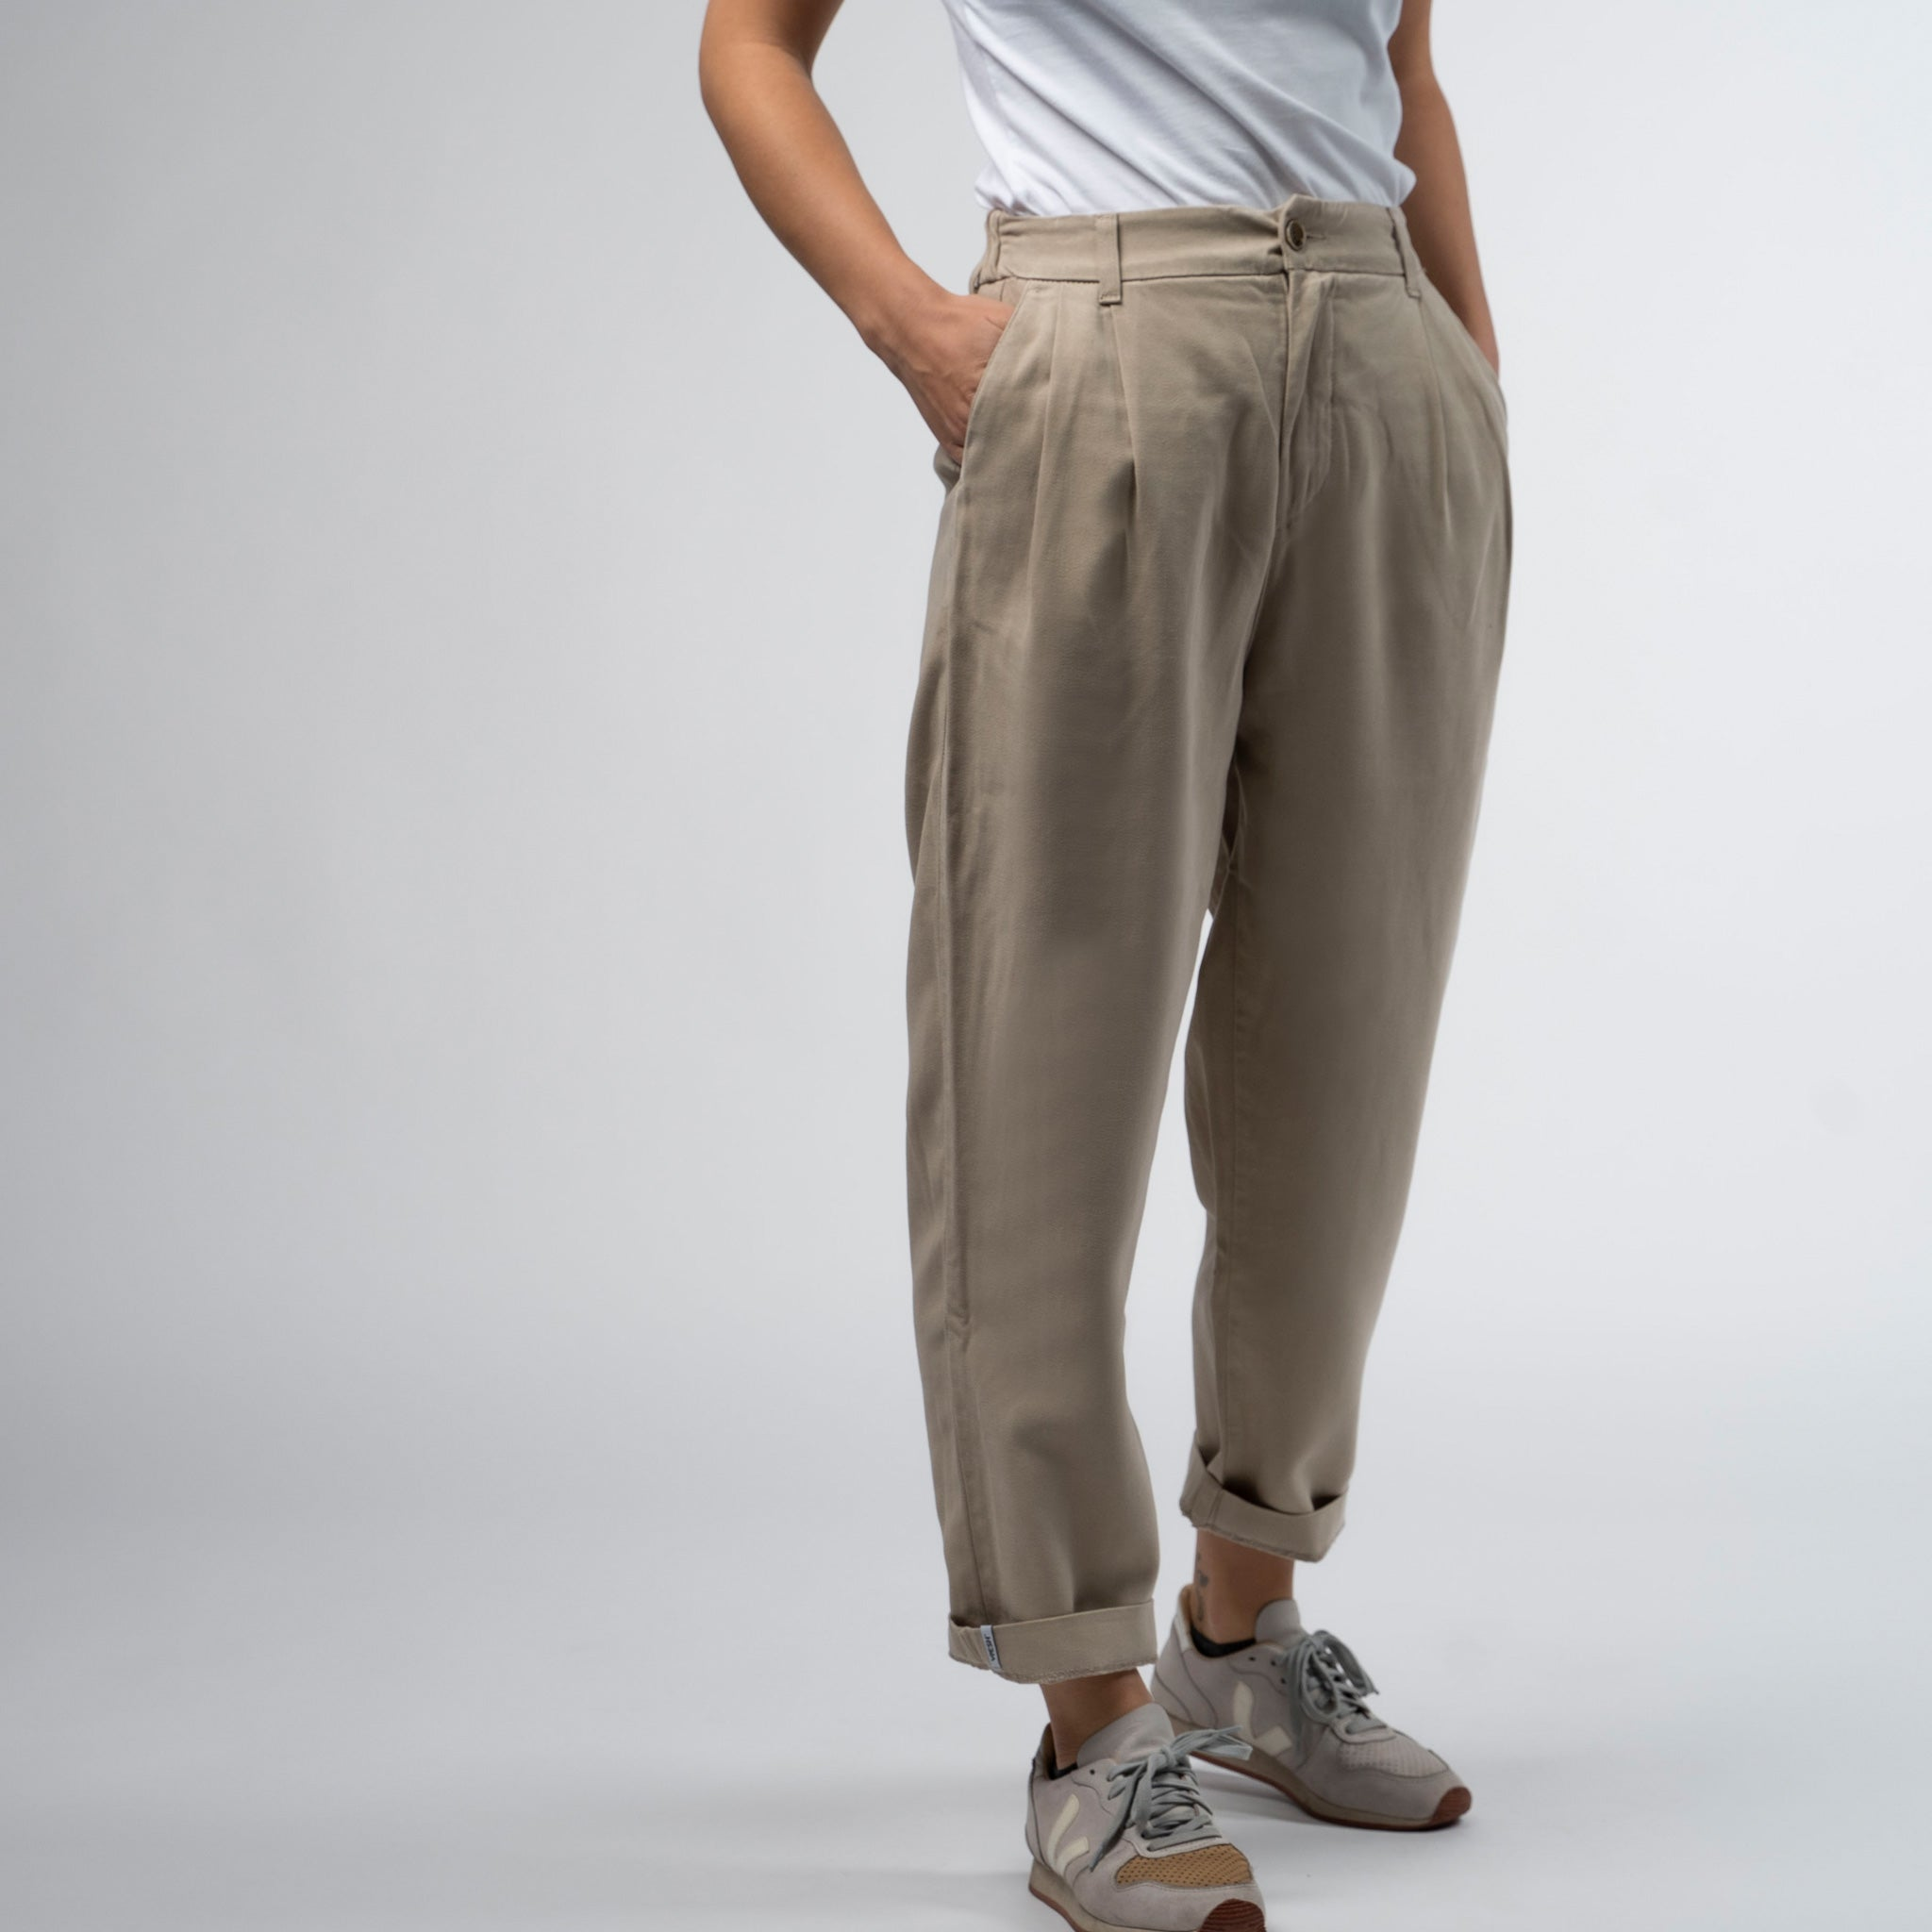 Tencel Pants - Slacks bege